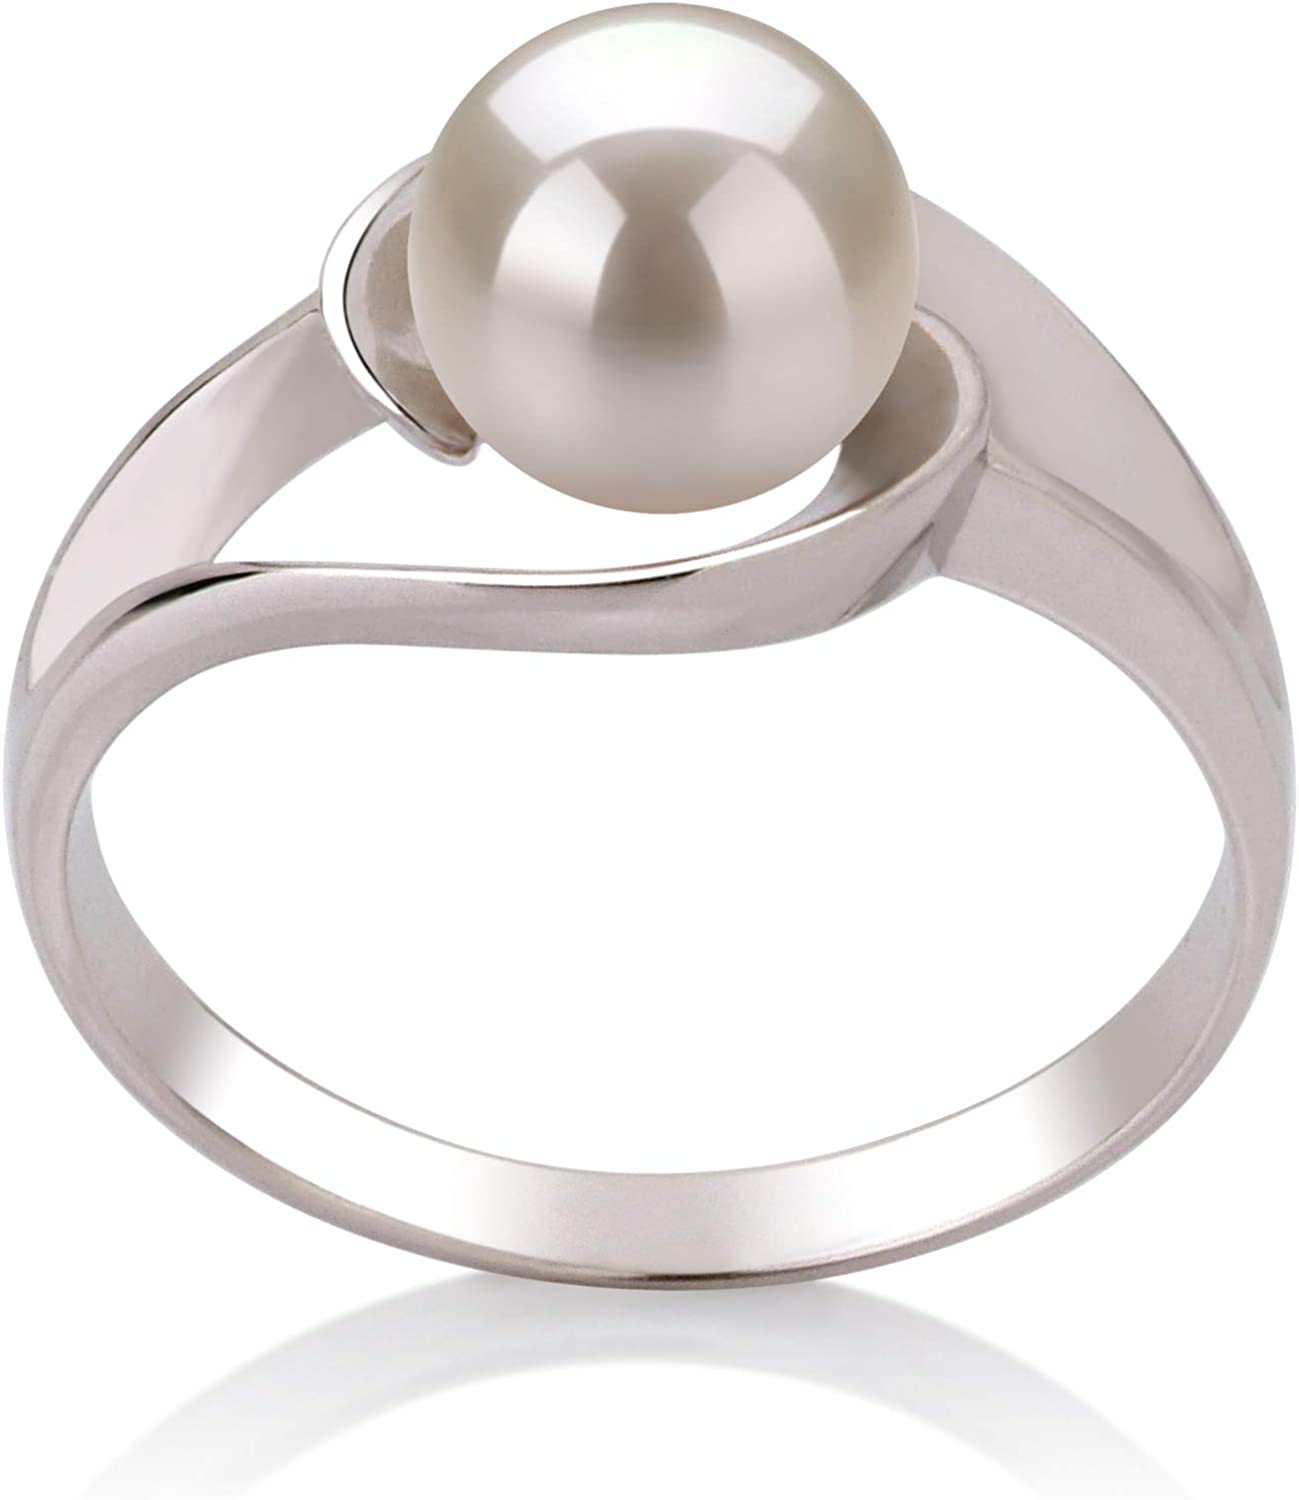 Clare White 6-7mm AAA Quality Freshwater 925 Sterling Silver Cultured Pearl Ring For Women